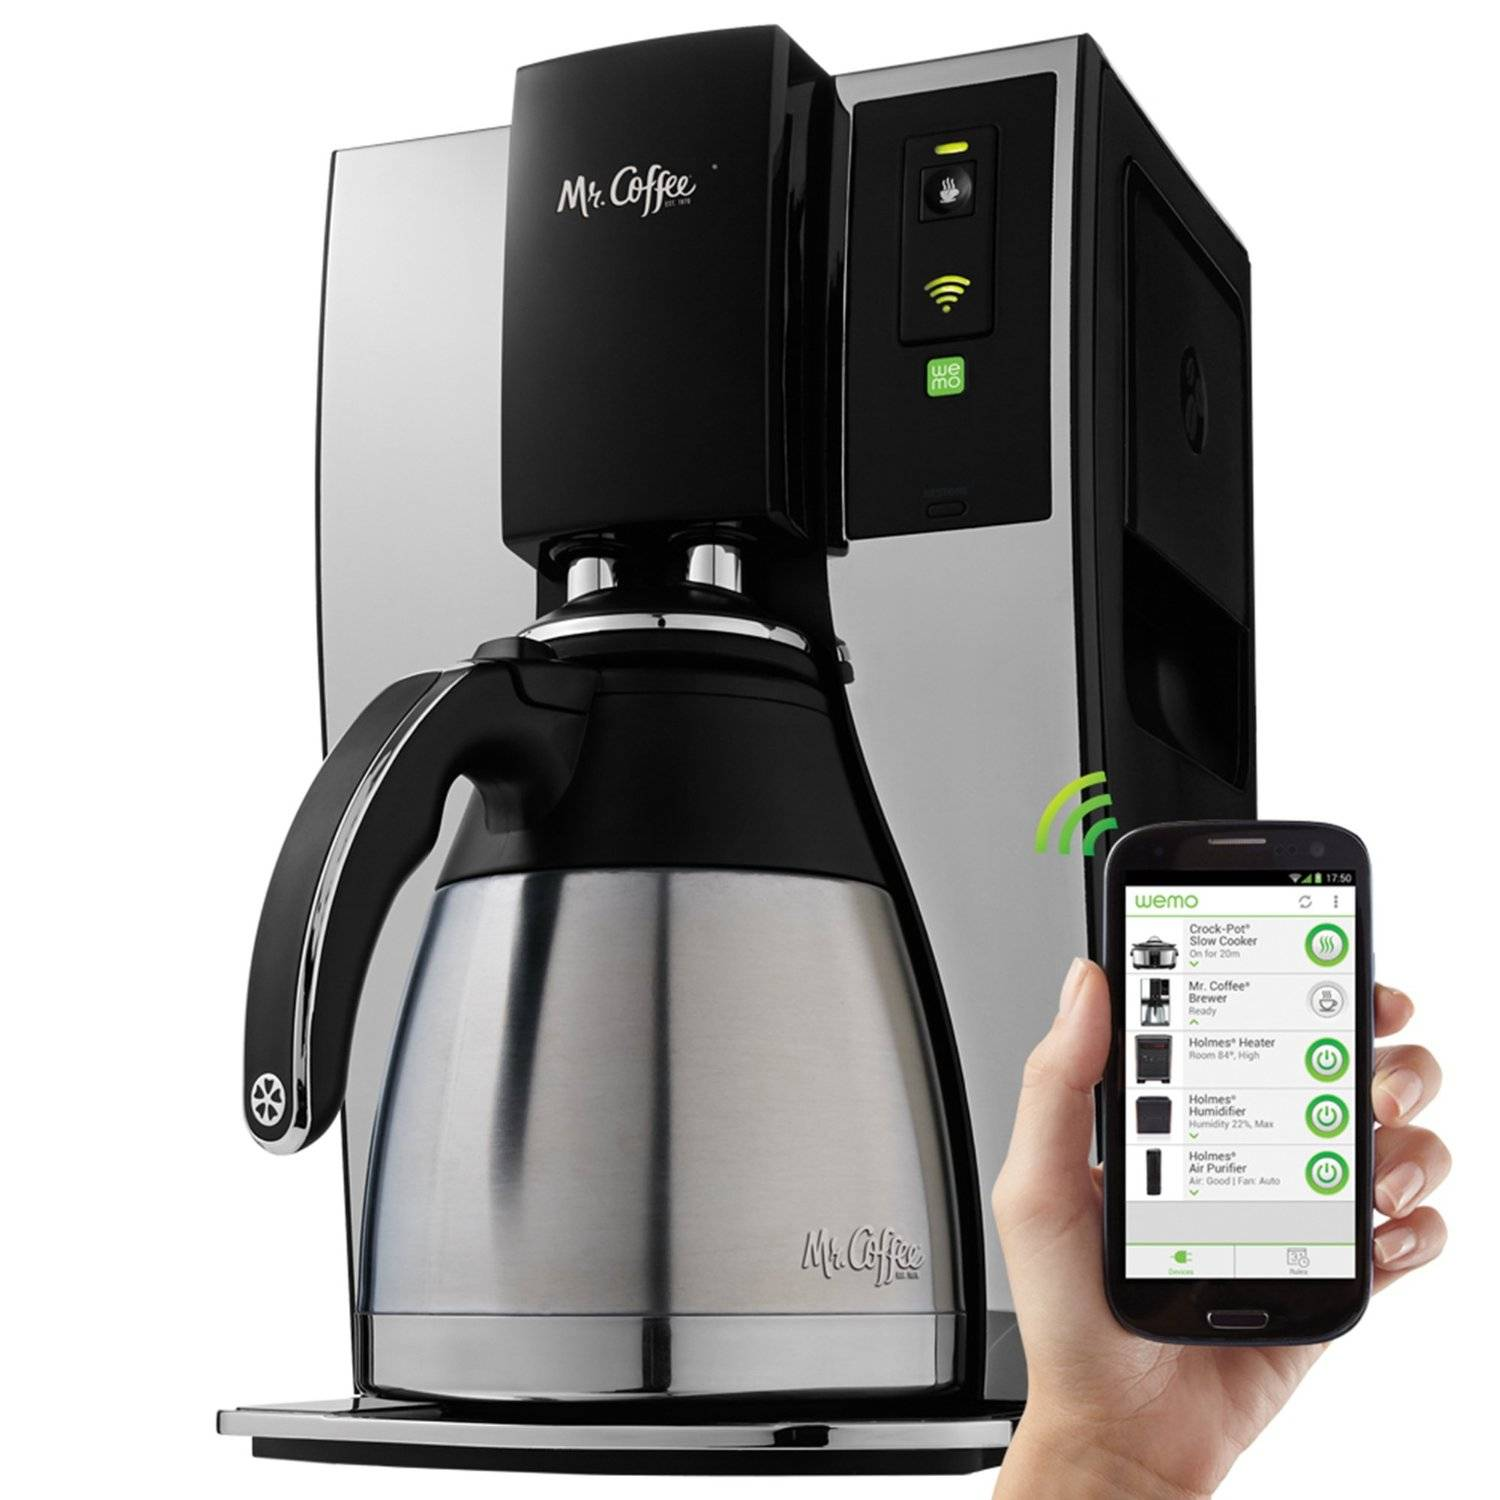 Mr. Coffee Smart Optimal Brew Coffeemaker